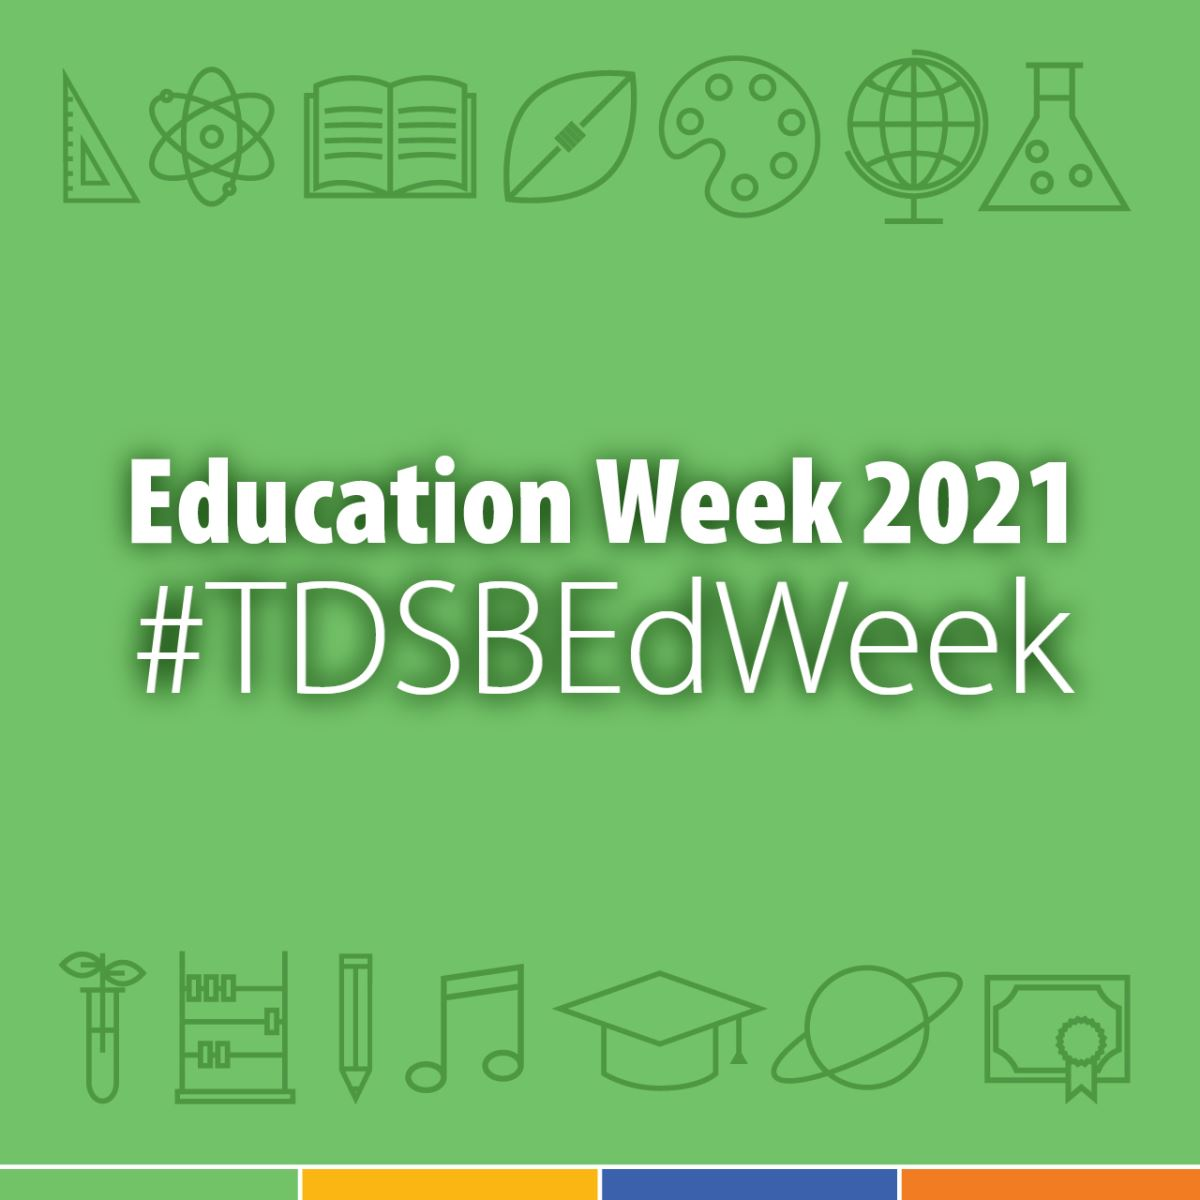 Education Week 2021